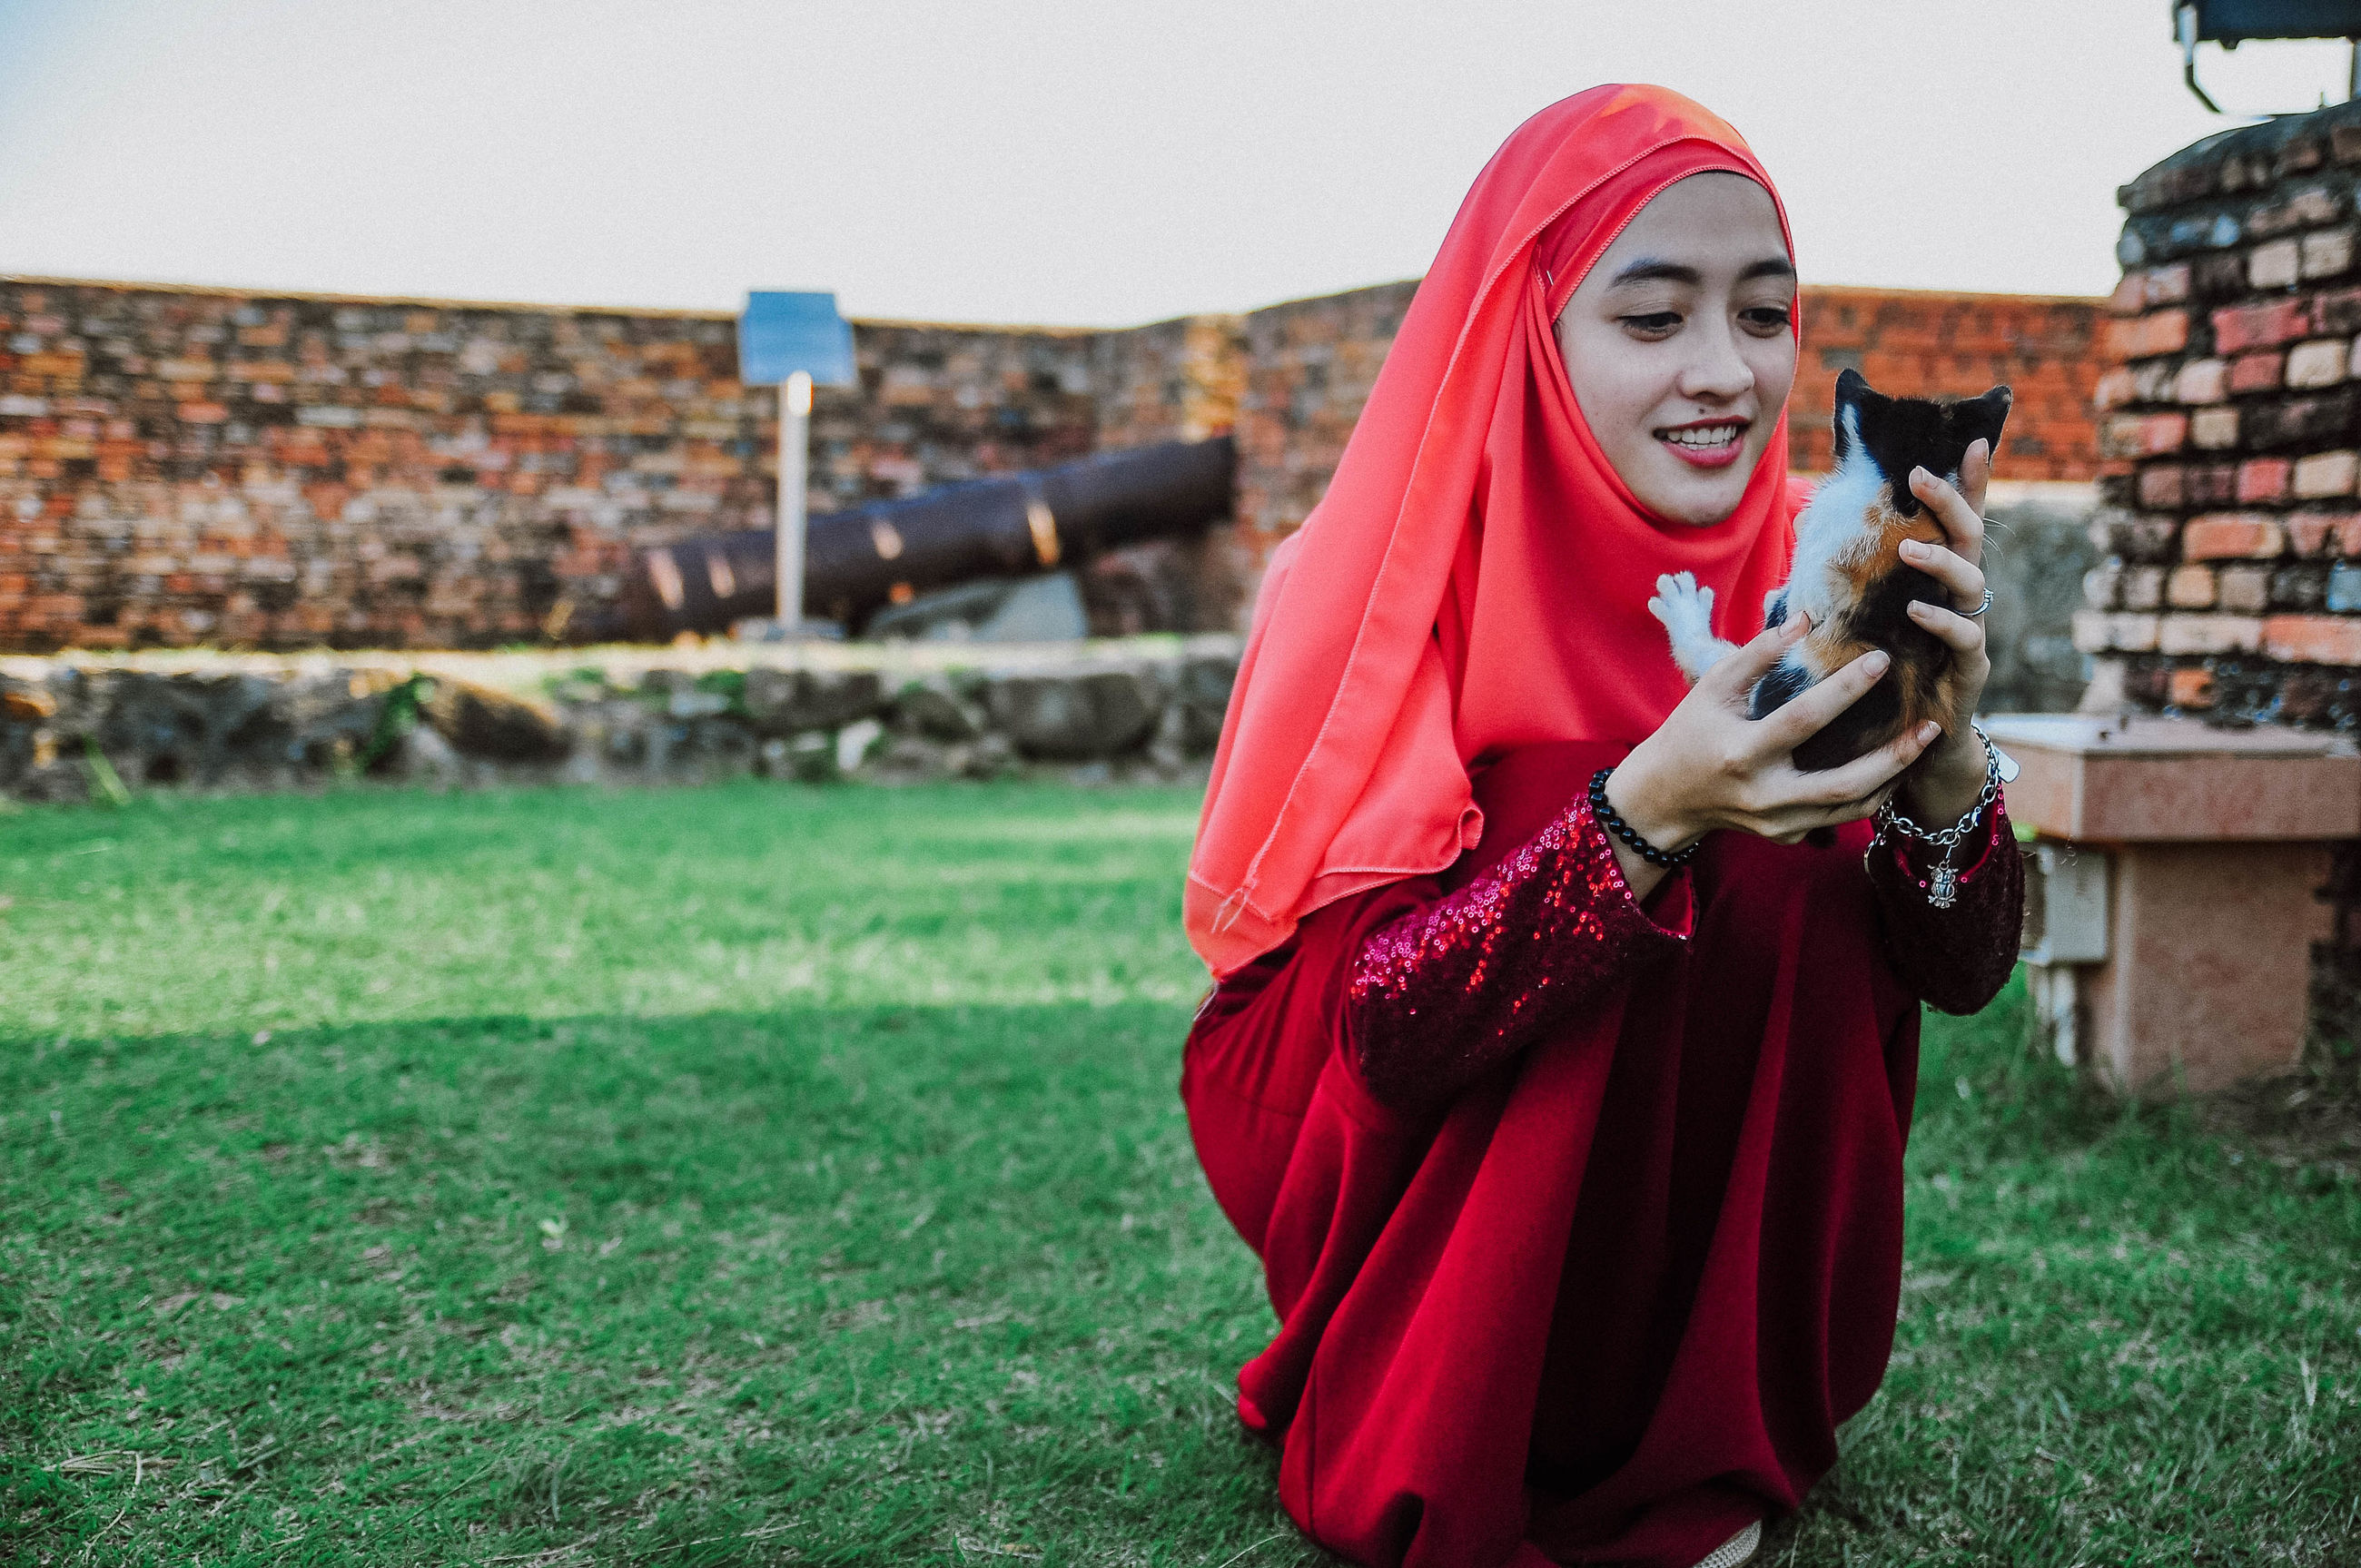 leisure activity, one person, traditional clothing, hood - clothing, grass, real people, holding, red, outdoors, hooded shirt, young adult, young women, lifestyles, day, full length, smiling, beautiful woman, sky, adult, people